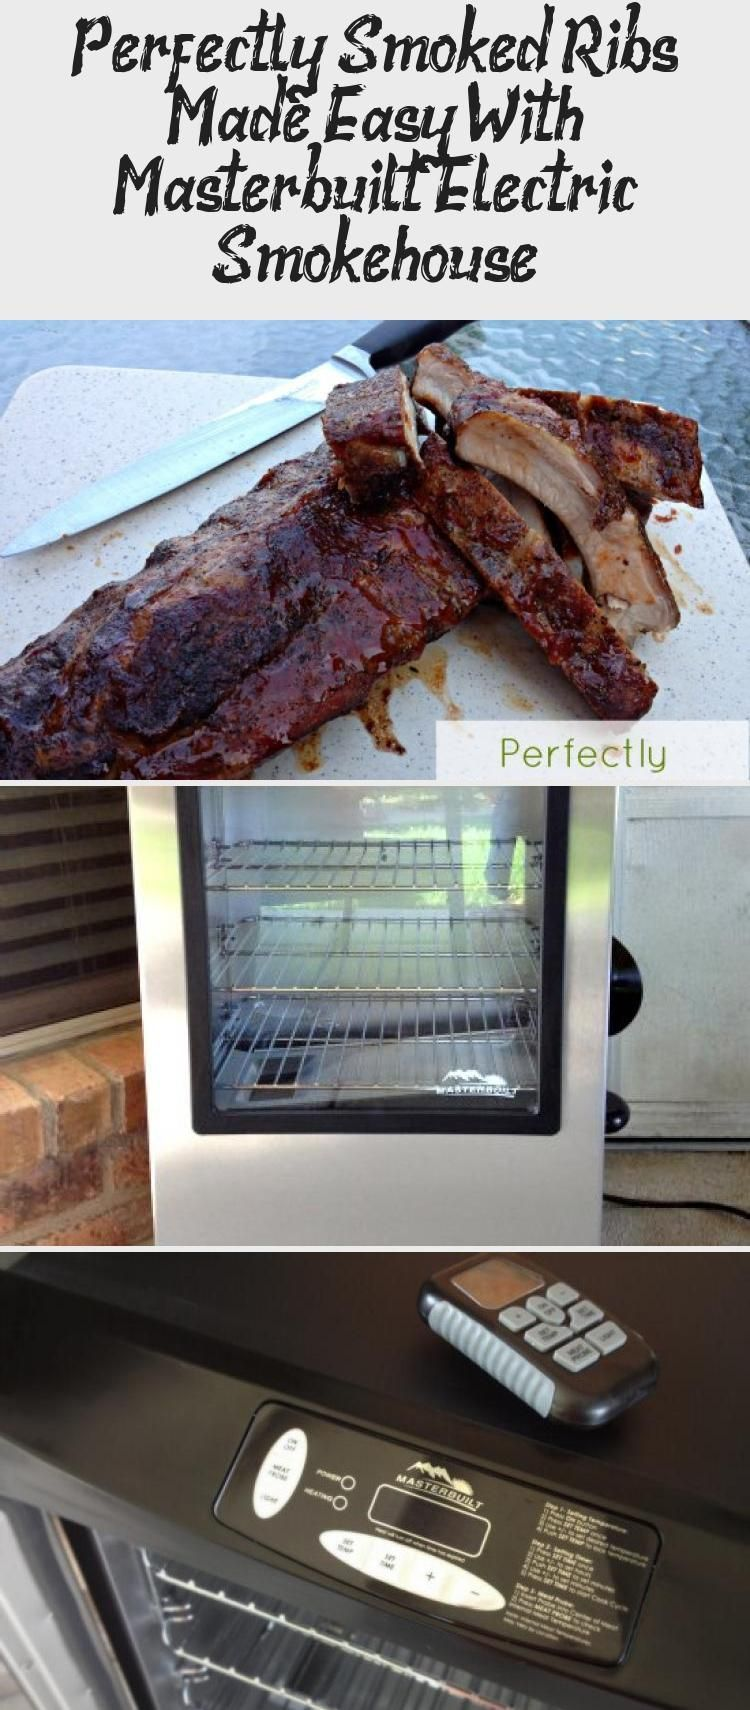 Looking For Masterbuilt Smoker Recipes These Smoked Ribs Are Amazing And So Eas In 2020 Smoked Ribs Smoker Recipes Masterbuilt Smoker